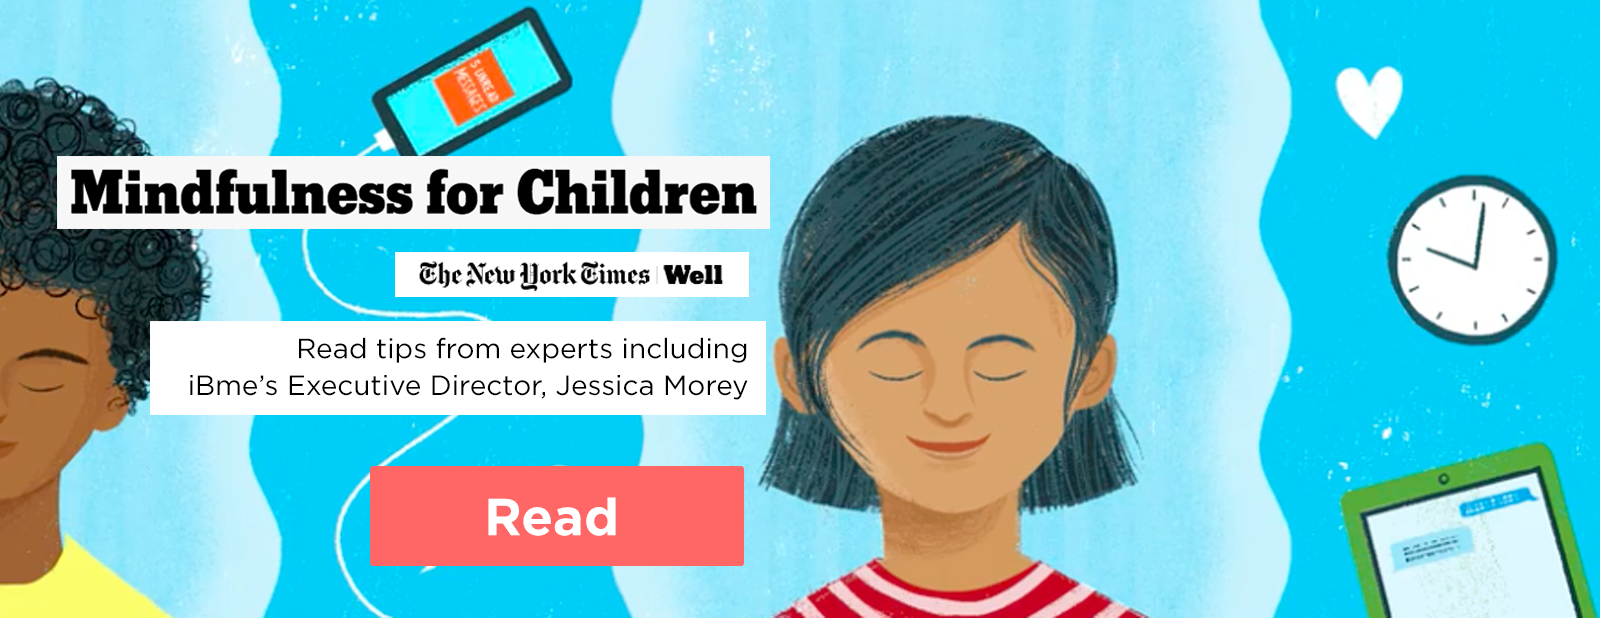 Mindfulness for Children article from New York Times